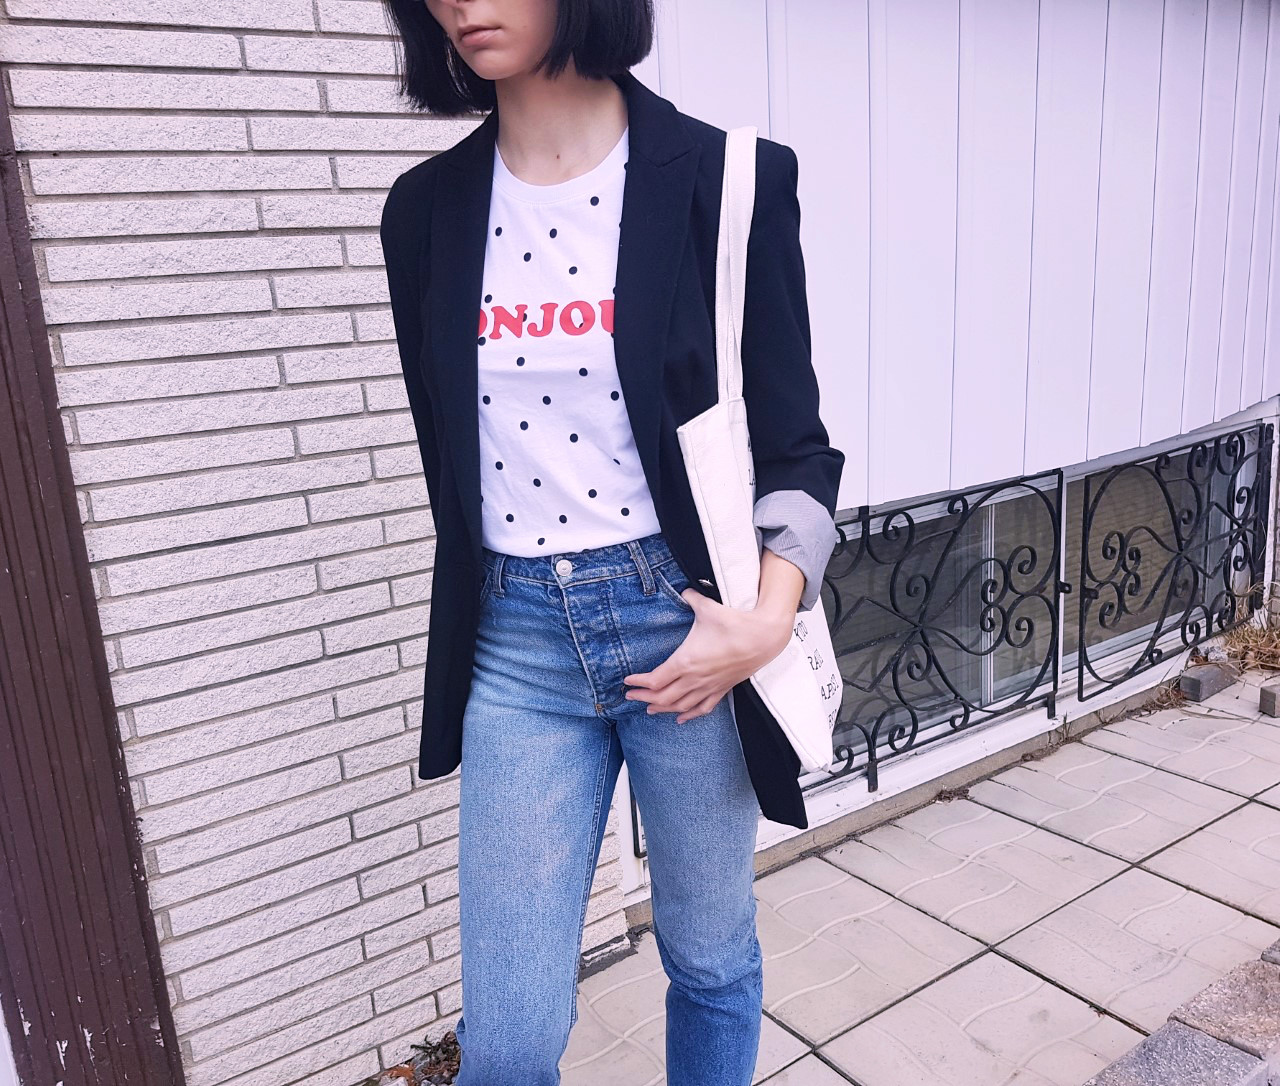 spring style, ootd, fashion, street style, forever21, Zara, H&M, Nike, fashion blogger, Montreal, Canada, instagram, influencer